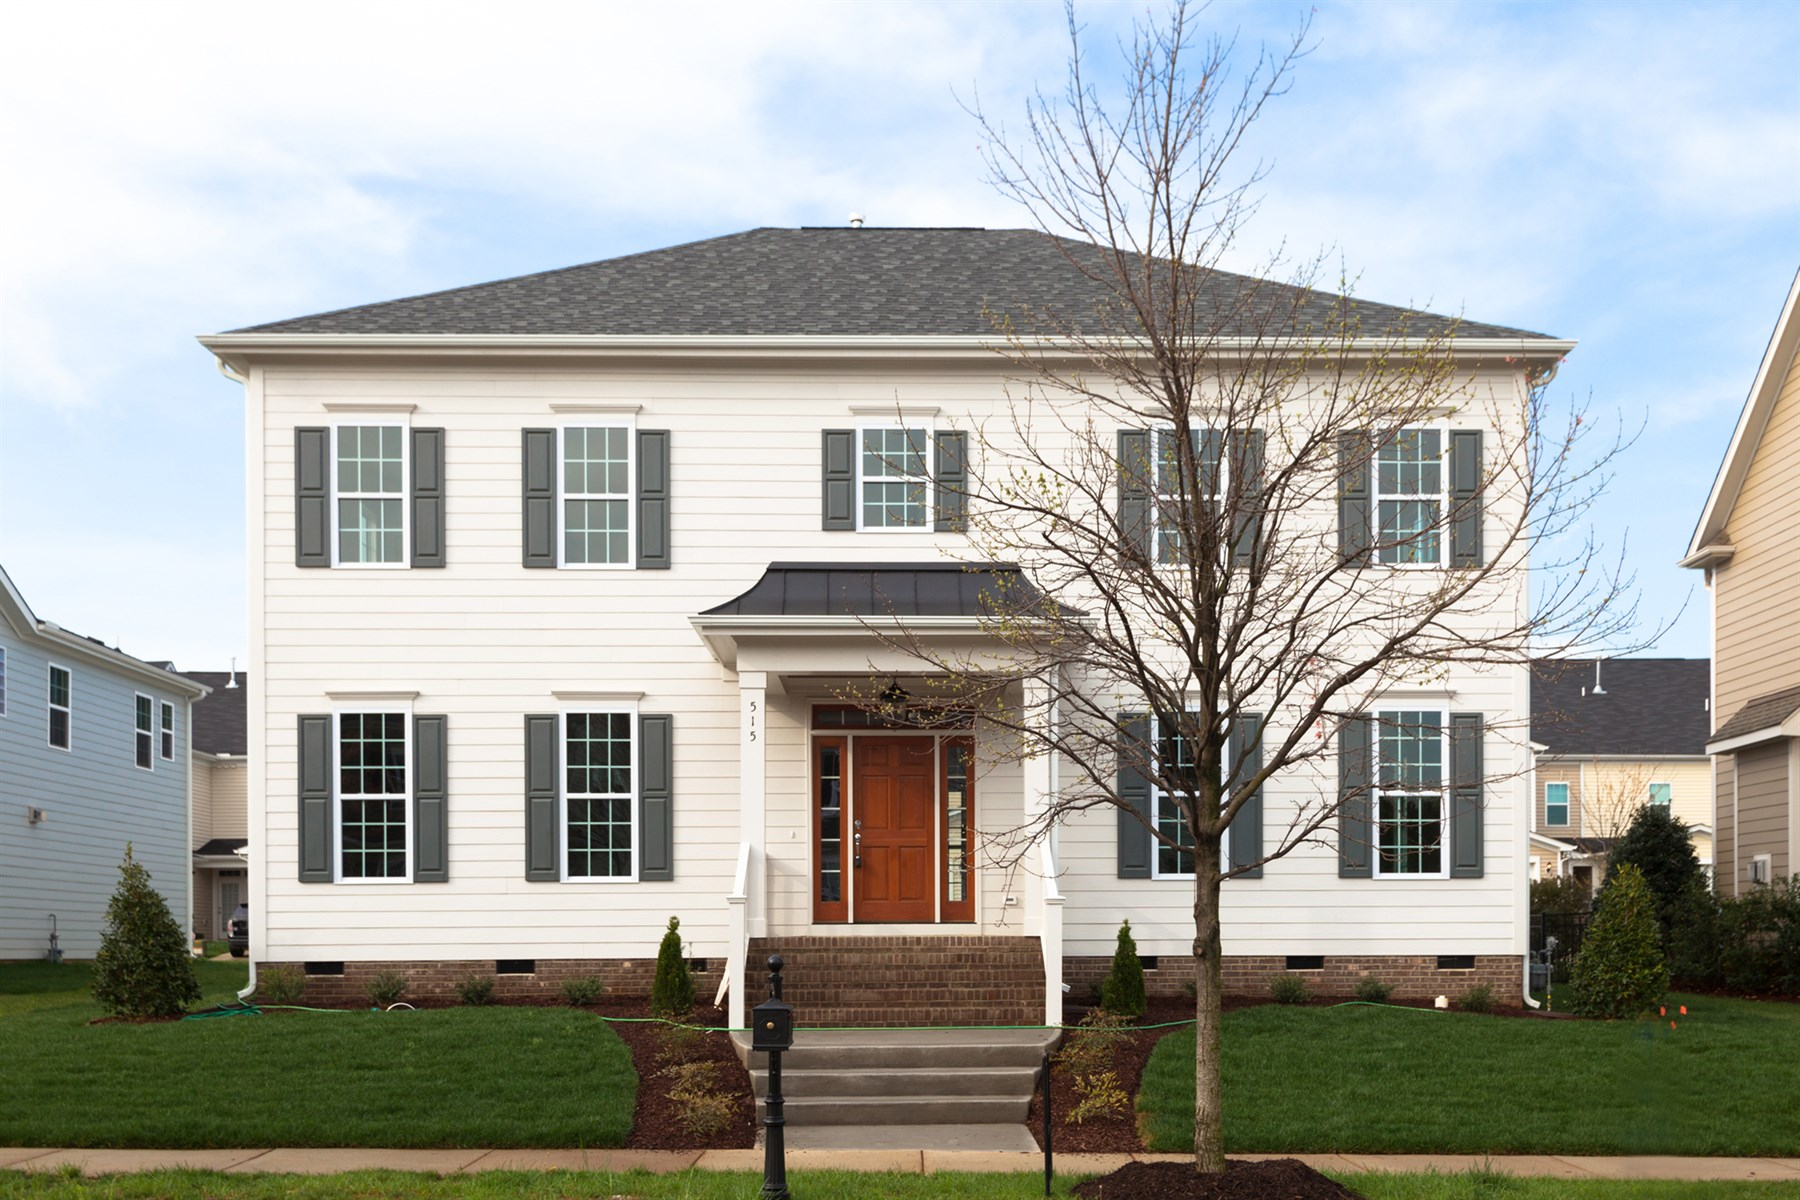 Single Family Home for Sale at Renaissance Park 515 Chapanoke Road Raleigh, North Carolina 27603 United States